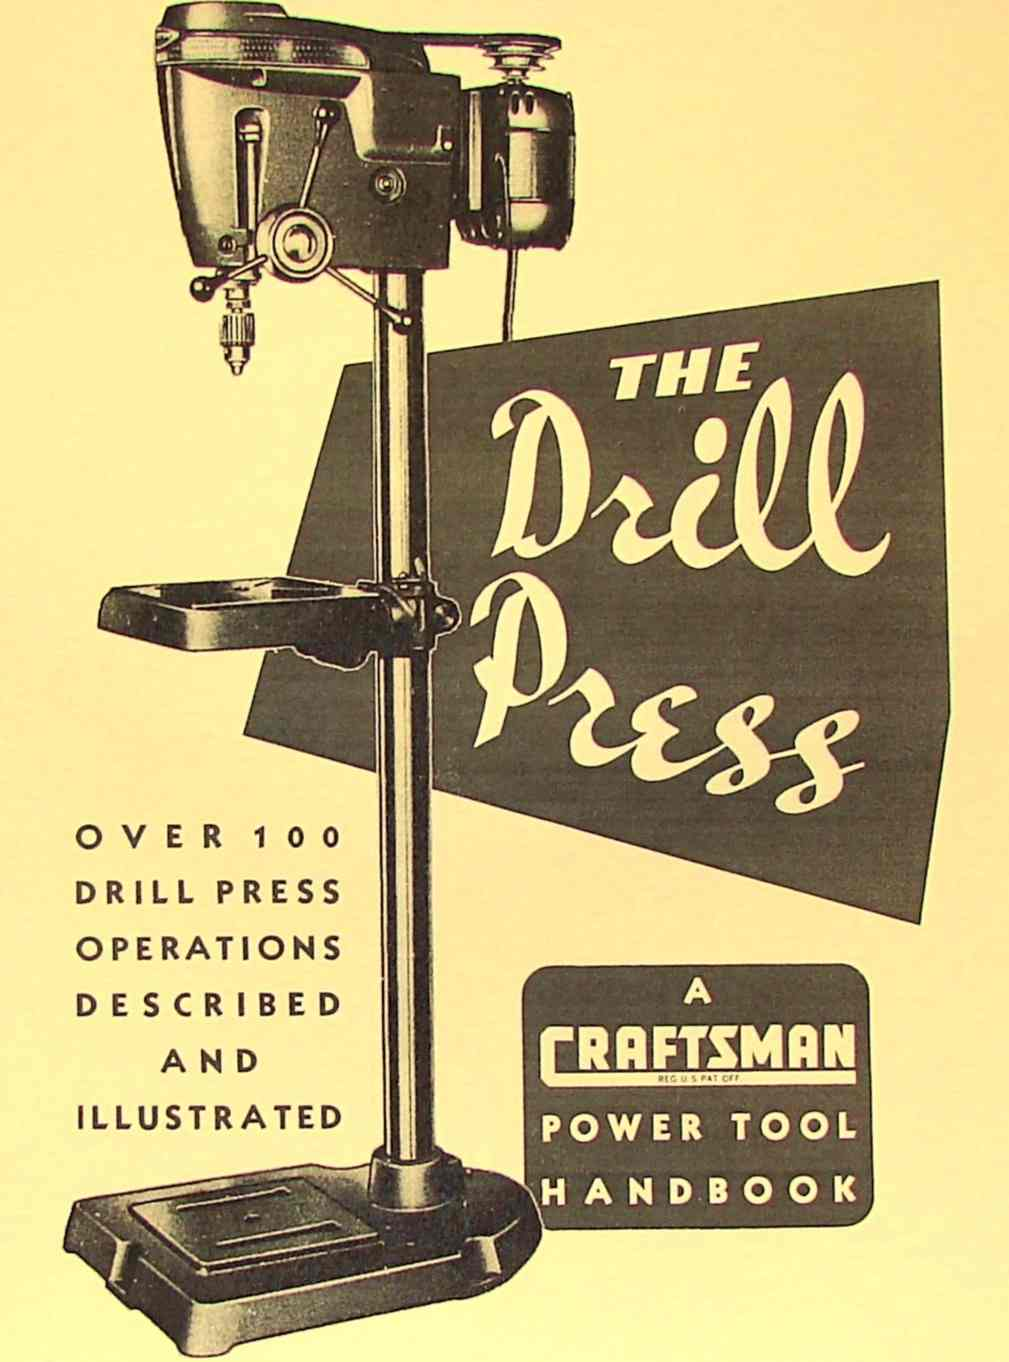 CRAFTSMAN The Drill Press Handbook Learn how to operate 100 different ways   Ozark Tool Manuals ...